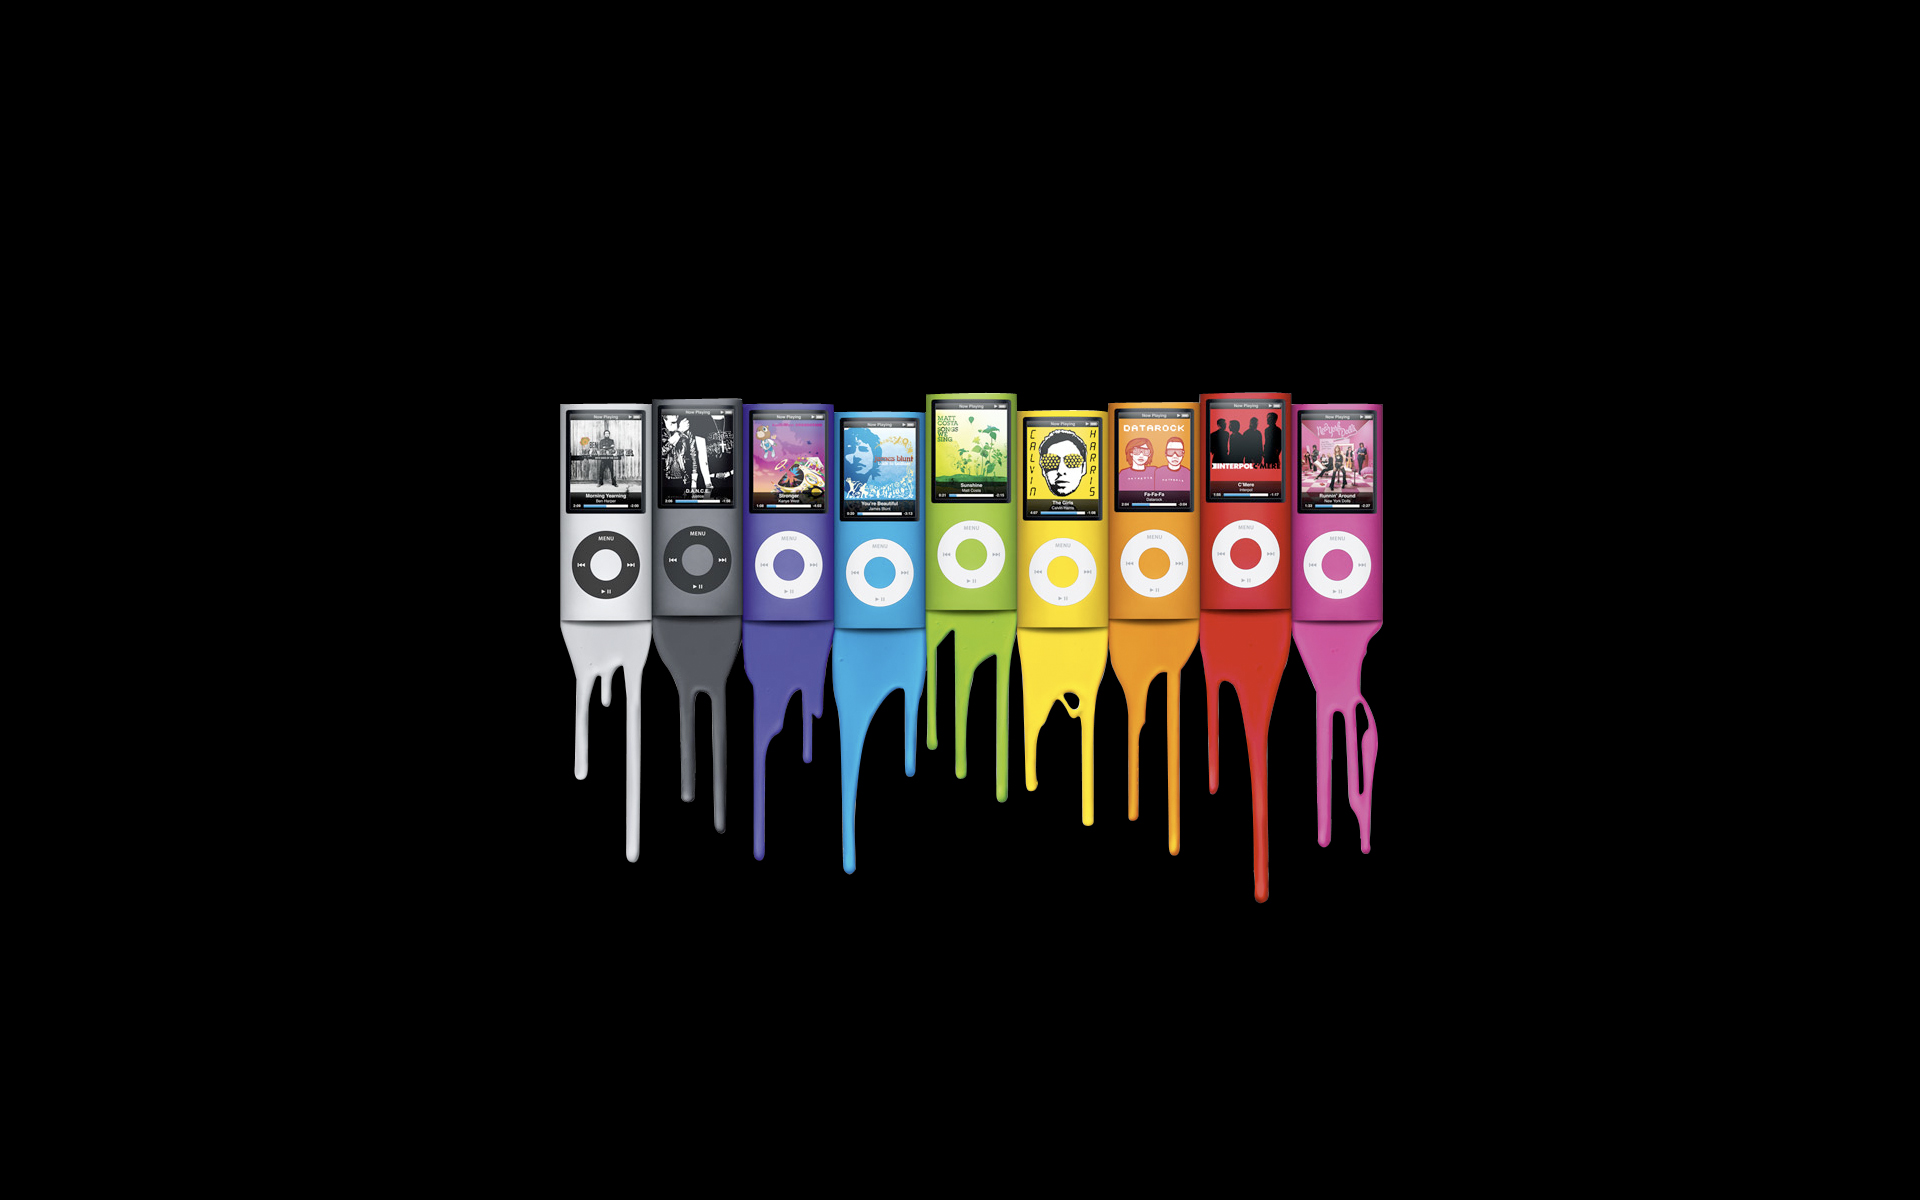 iPod Wallpapers 6454 1920x1200 px HDWallSourcecom